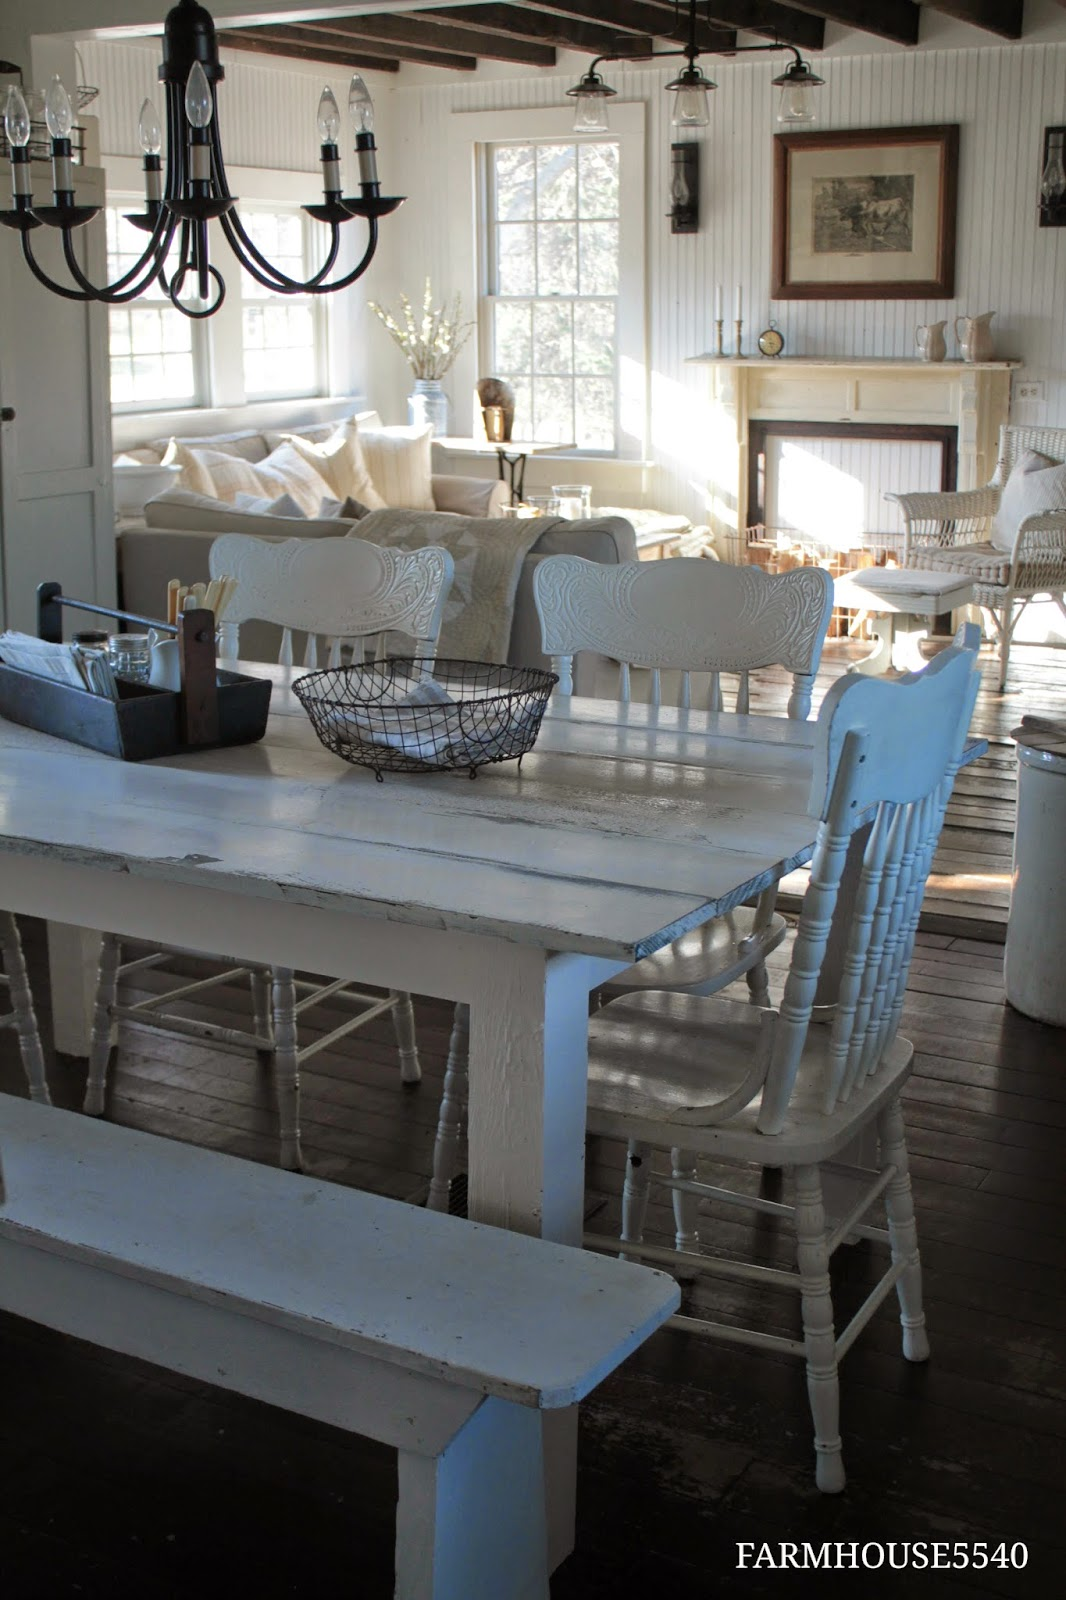 Farm House Kitchen Table Orlando Hotels With Kitchens Farmhouse 5540 Our